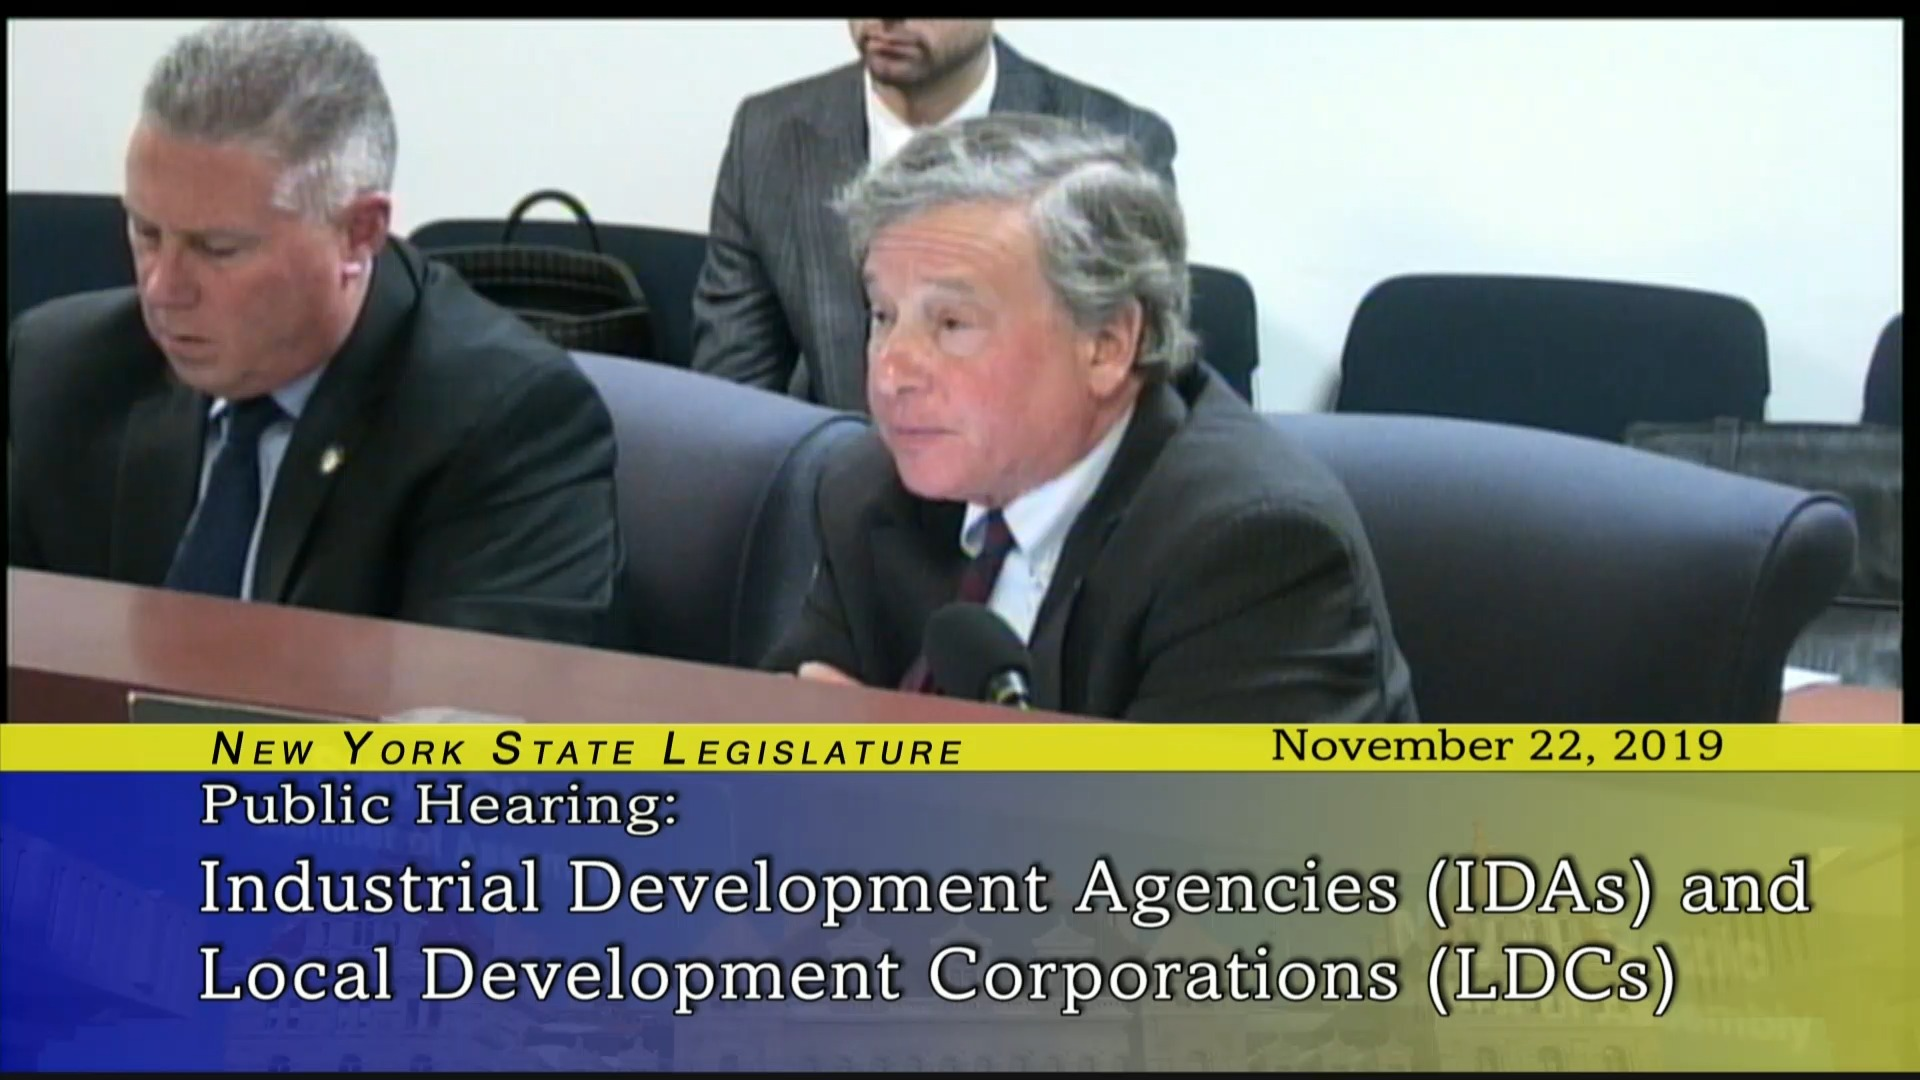 Public Hearing on IDA's and LDC's effectivenesso